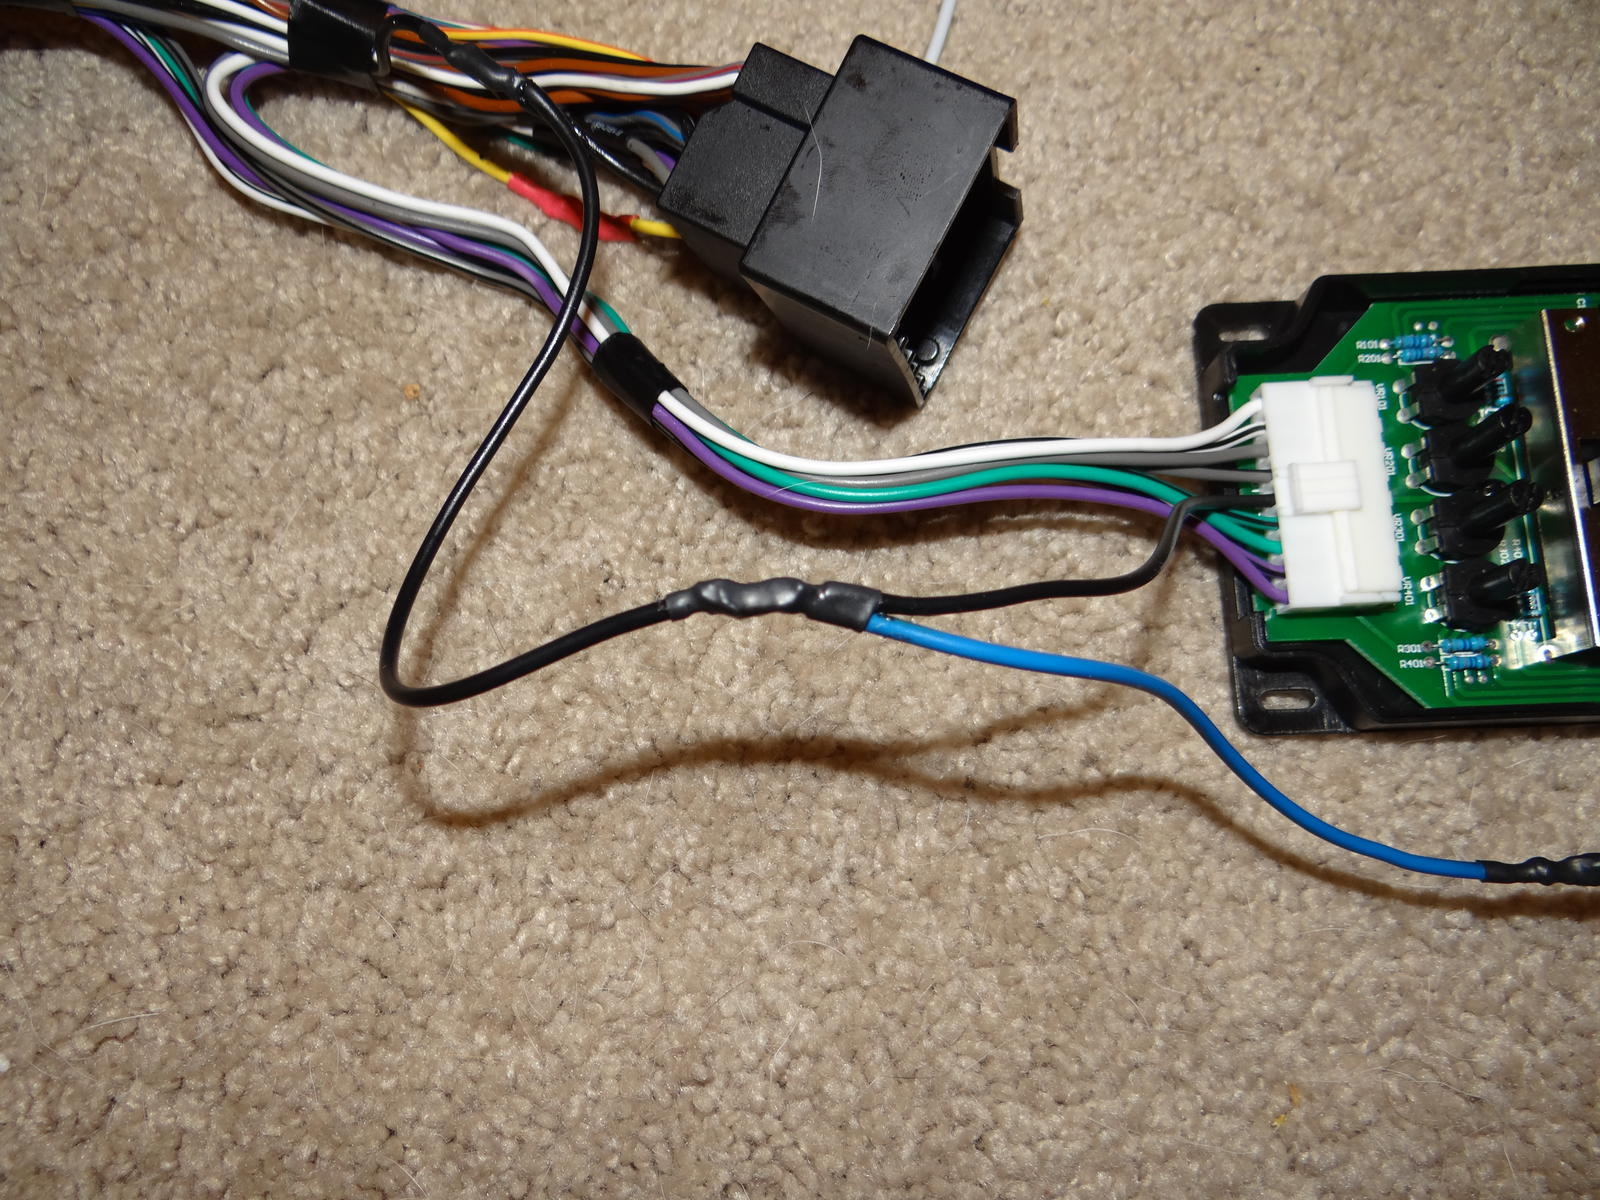 99698d1406273454 aa gm44 wiring questions how dsc02479 aa gm44 wiring questions how to ? Pac Cutting Diagram at bayanpartner.co